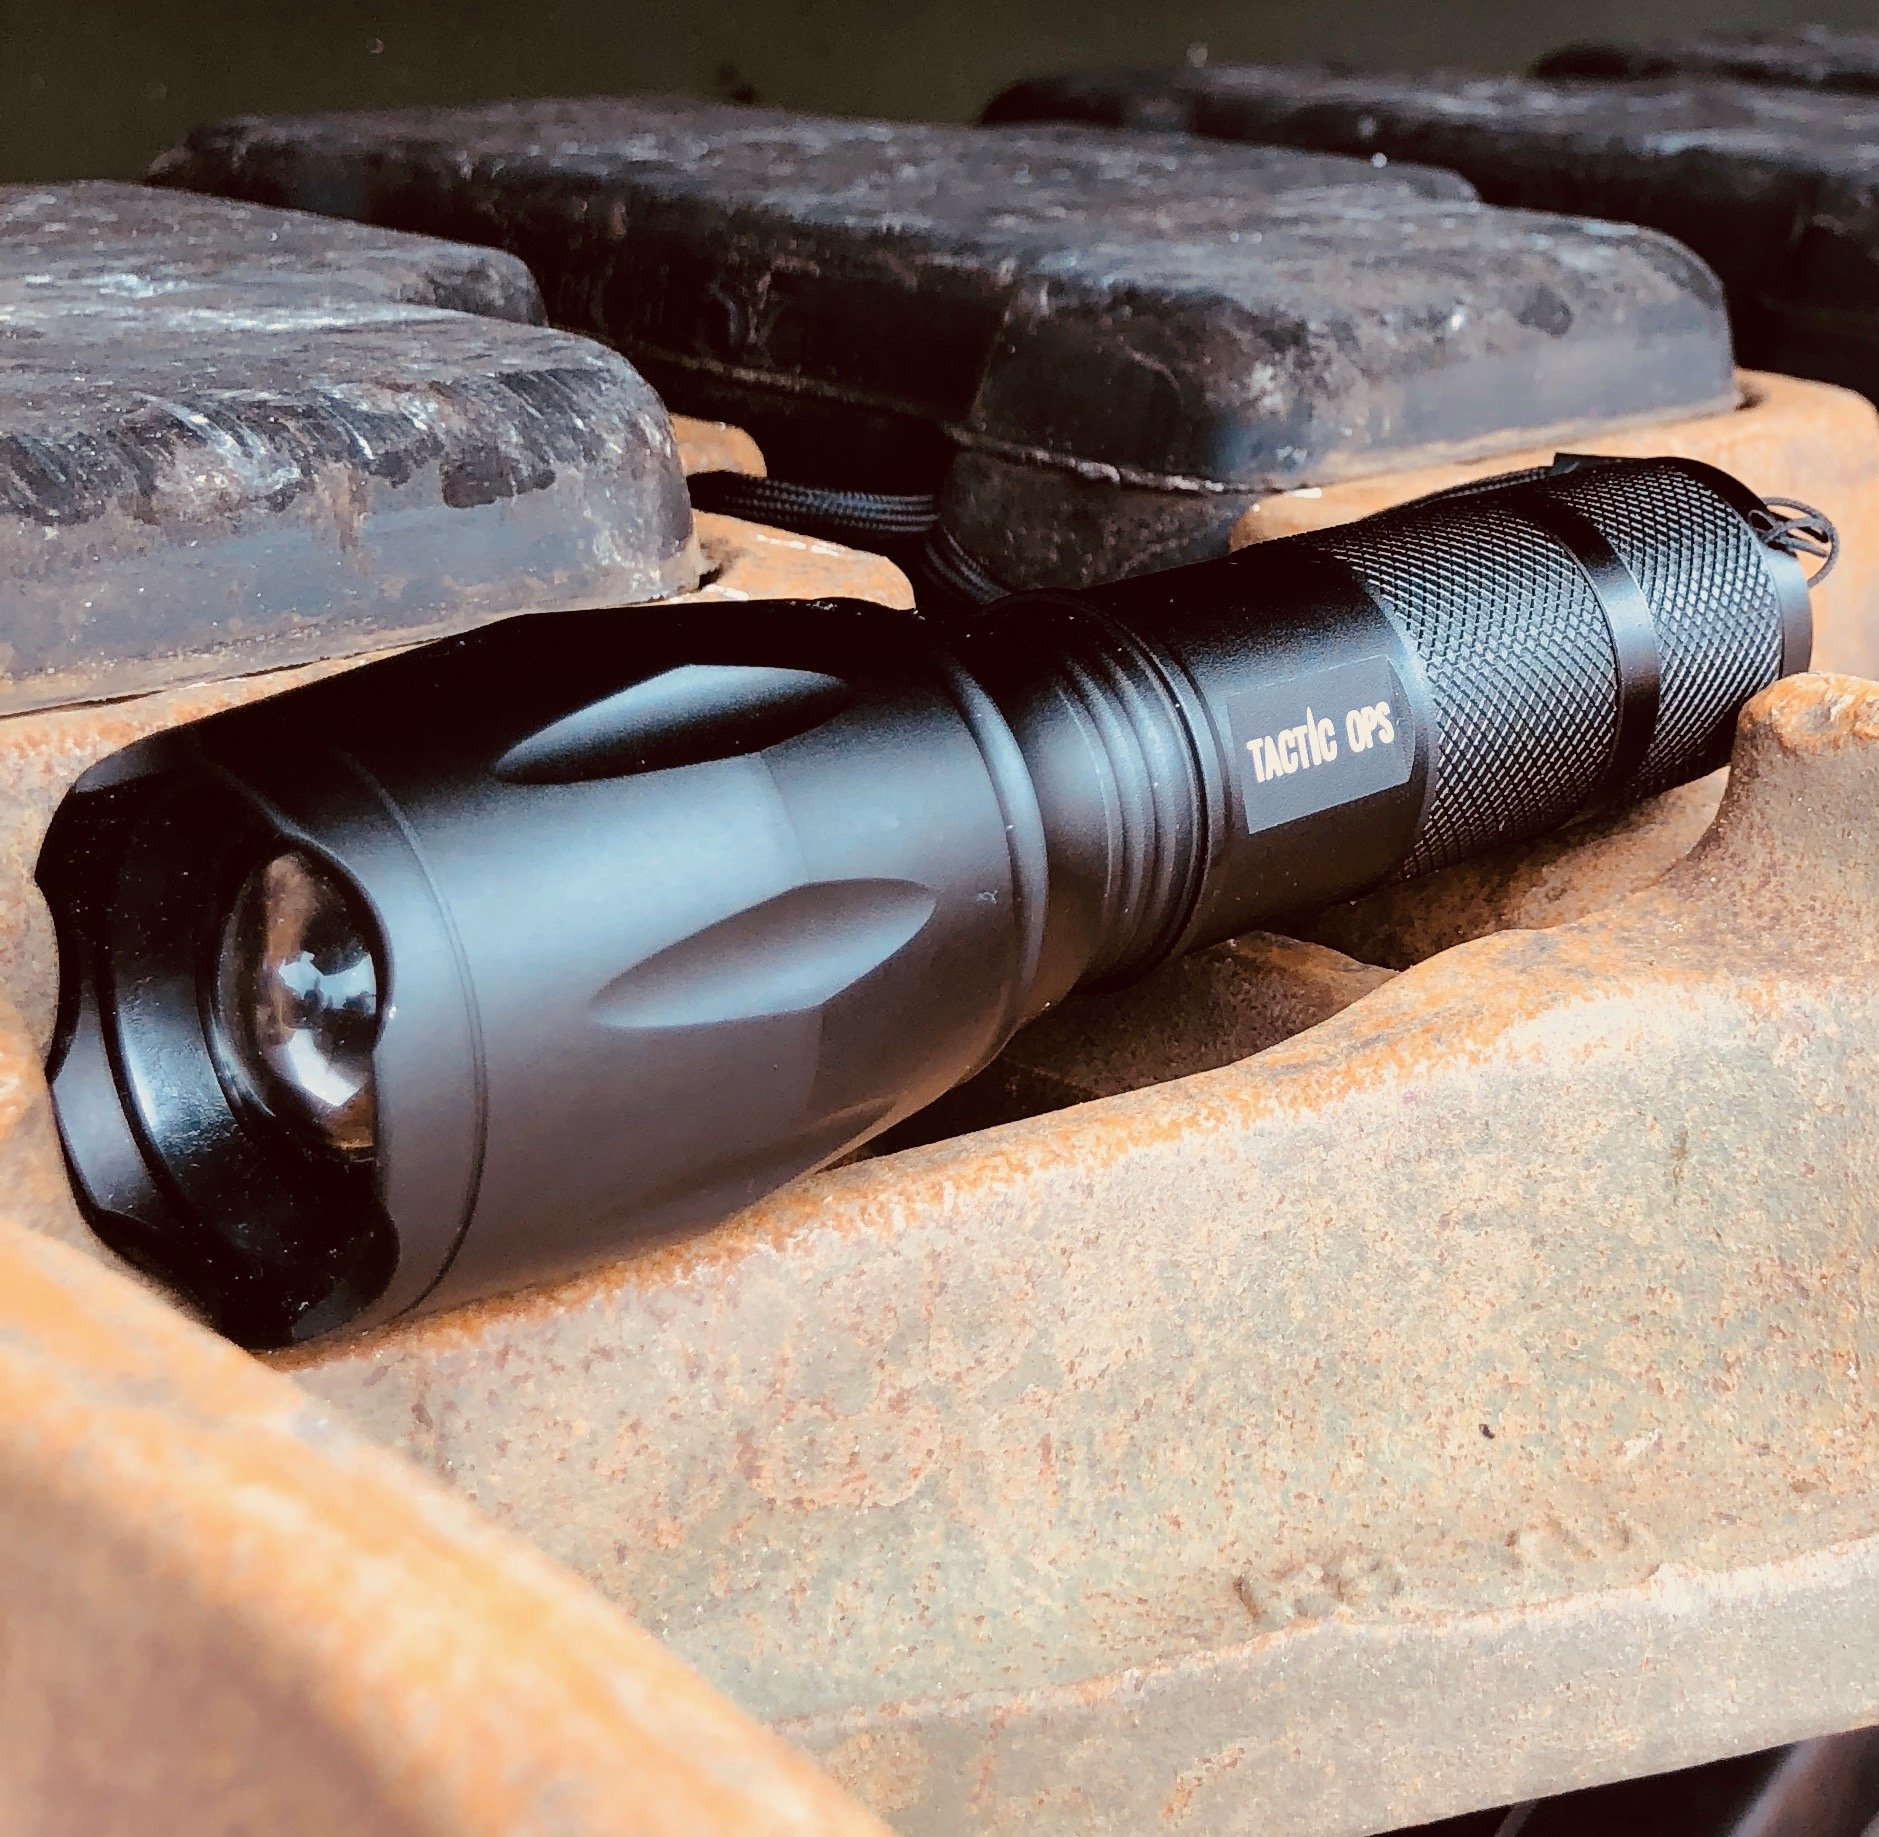 TACTIC OPS - Rechargeable Tactical Super Bright 1200 Lumen LED Aluminum Alloy Flashlight carrying case and USB cable and plug included